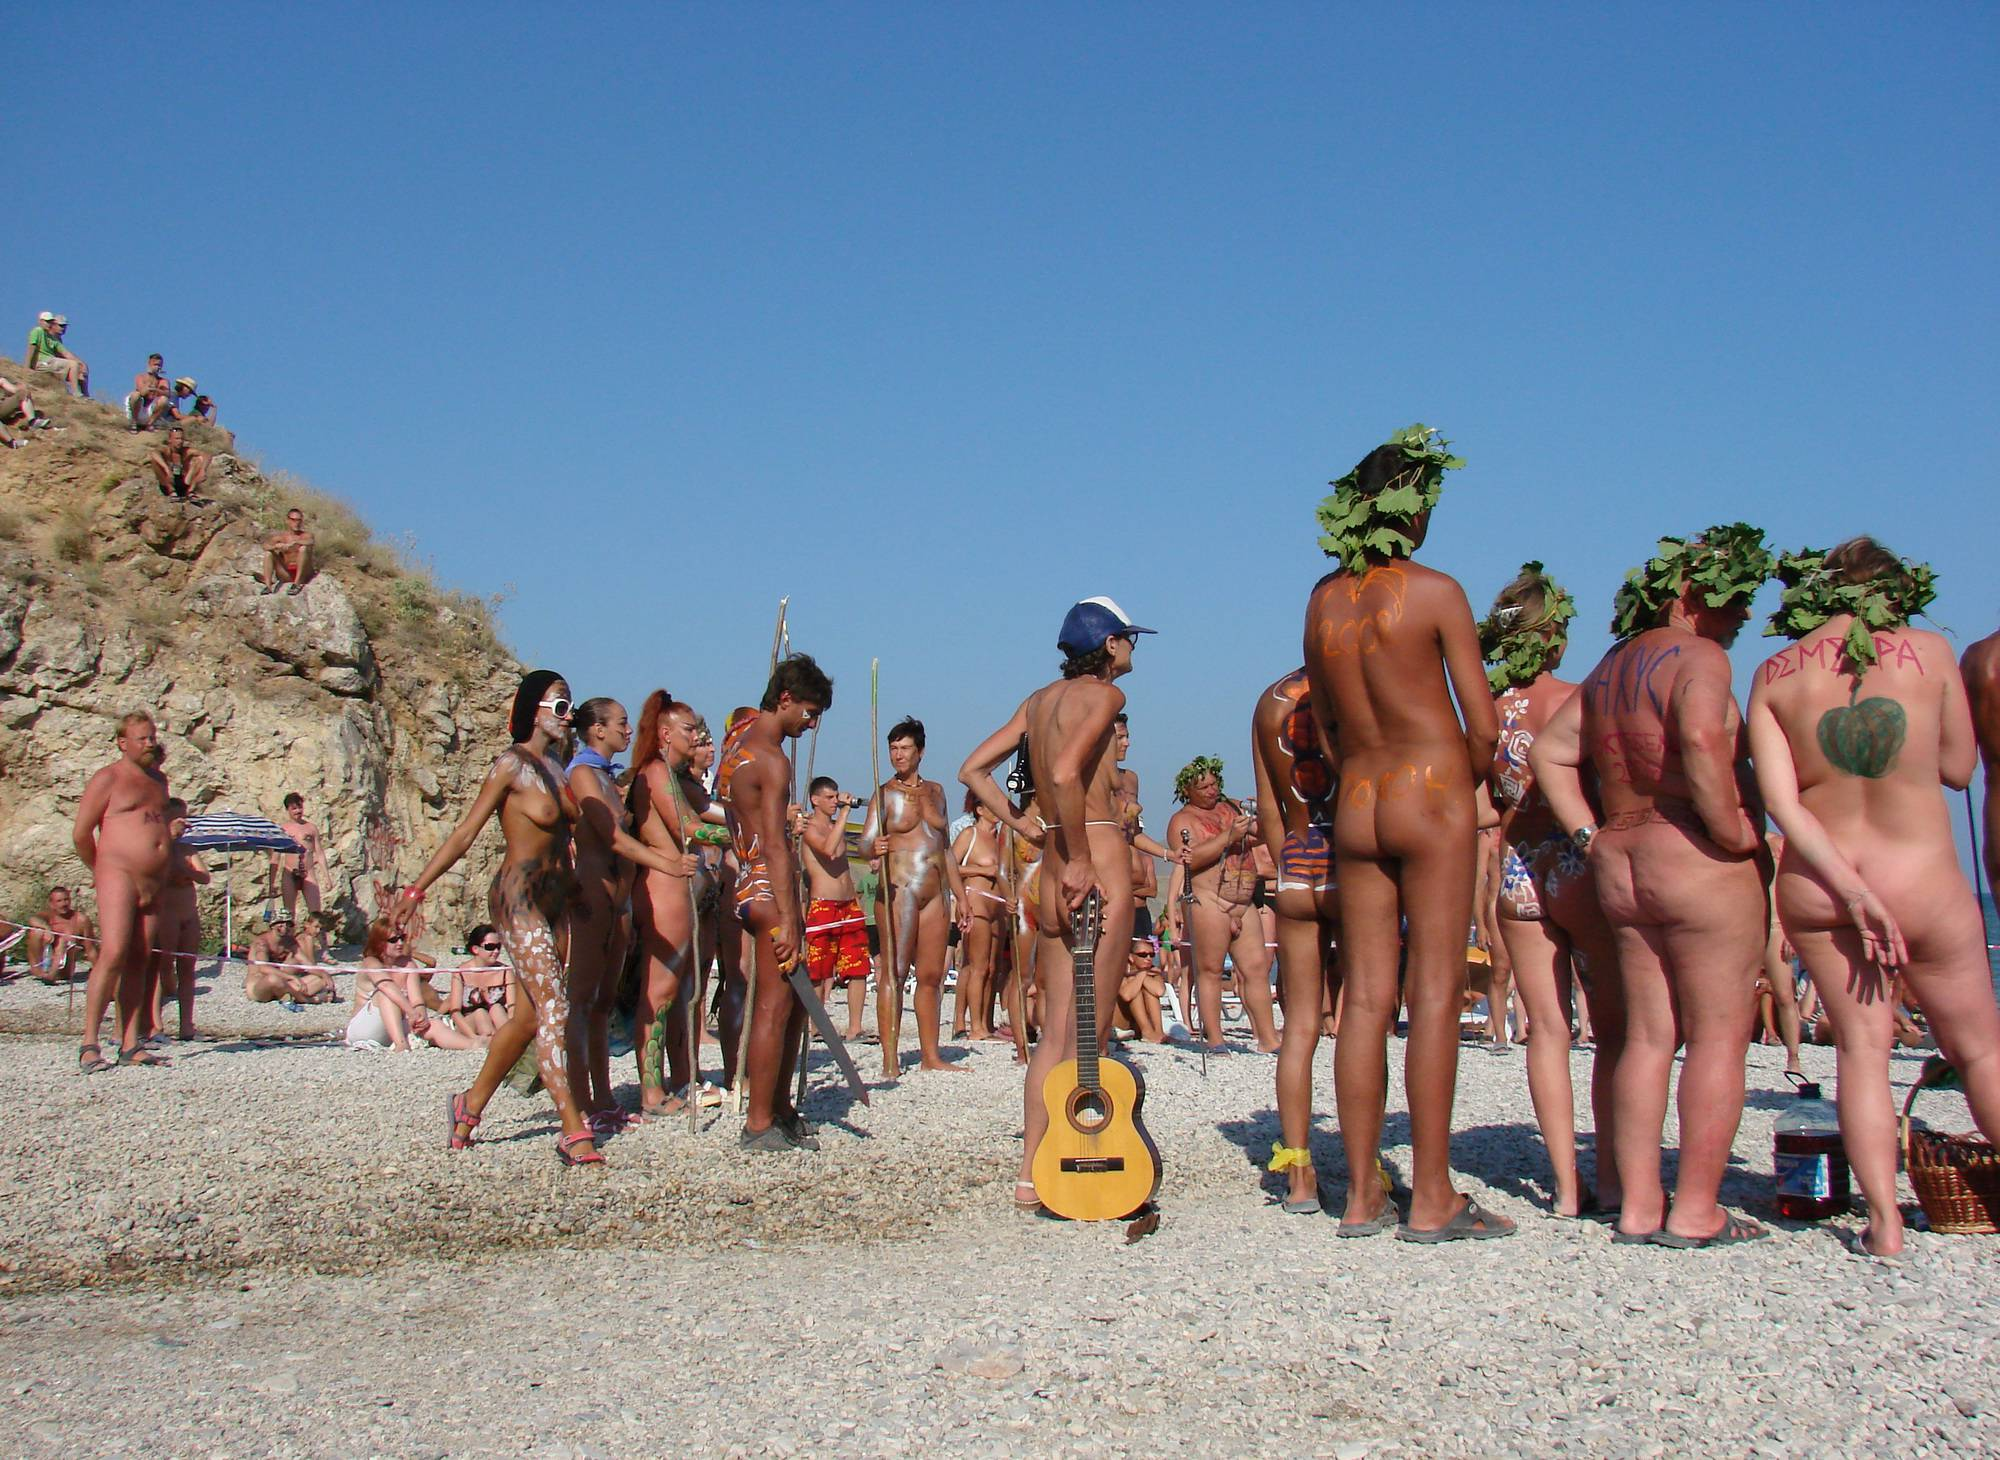 Nudist Pictures Neptune Day Sunny Group - 1